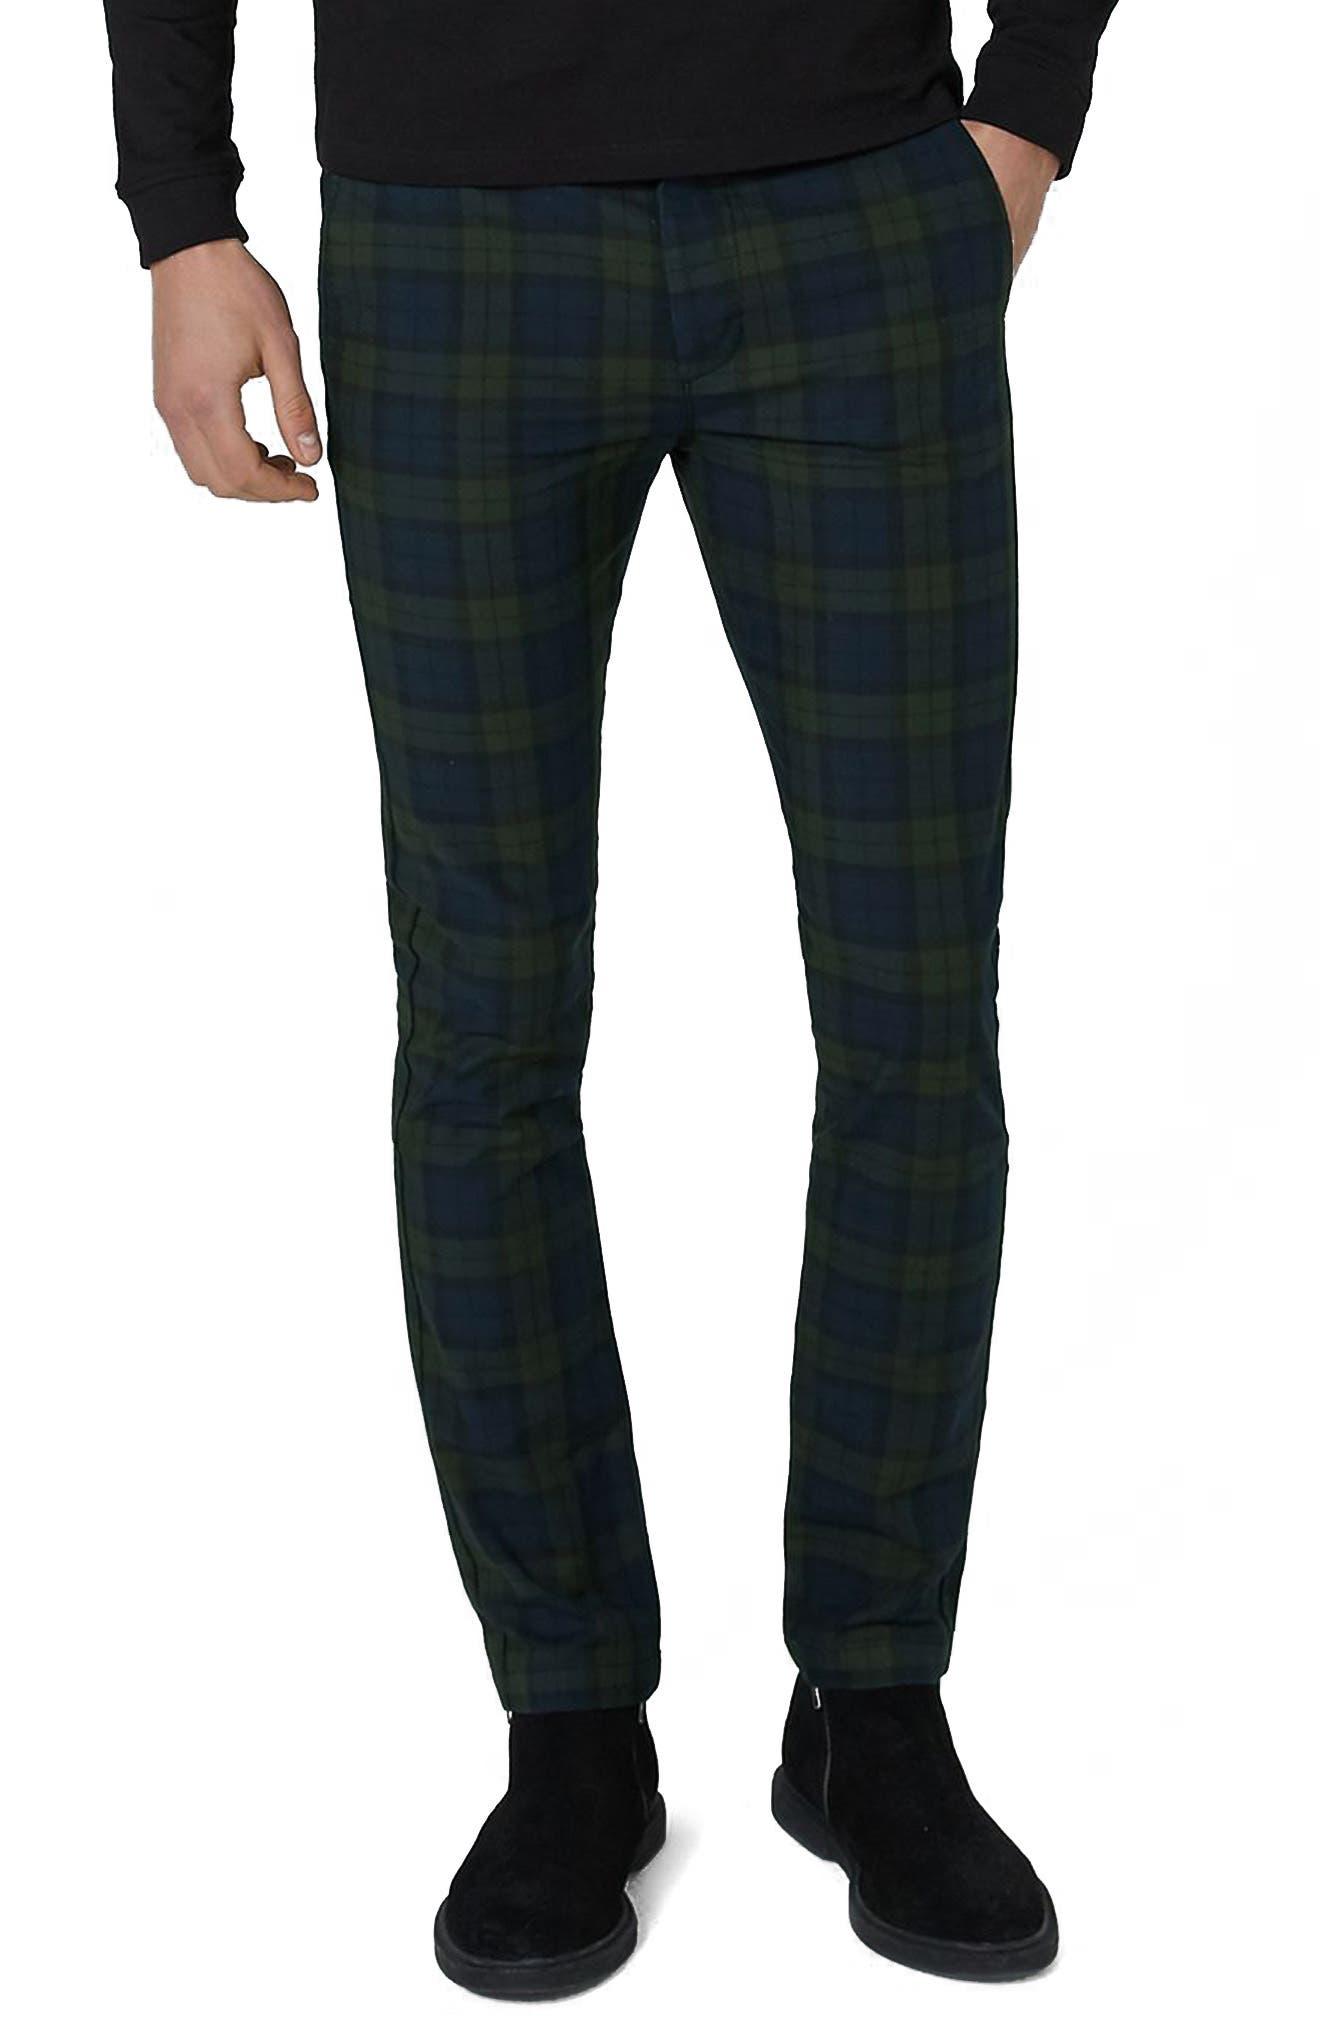 Black Watch Check Stretch Skinny Fit Trousers,                         Main,                         color, Green Multi